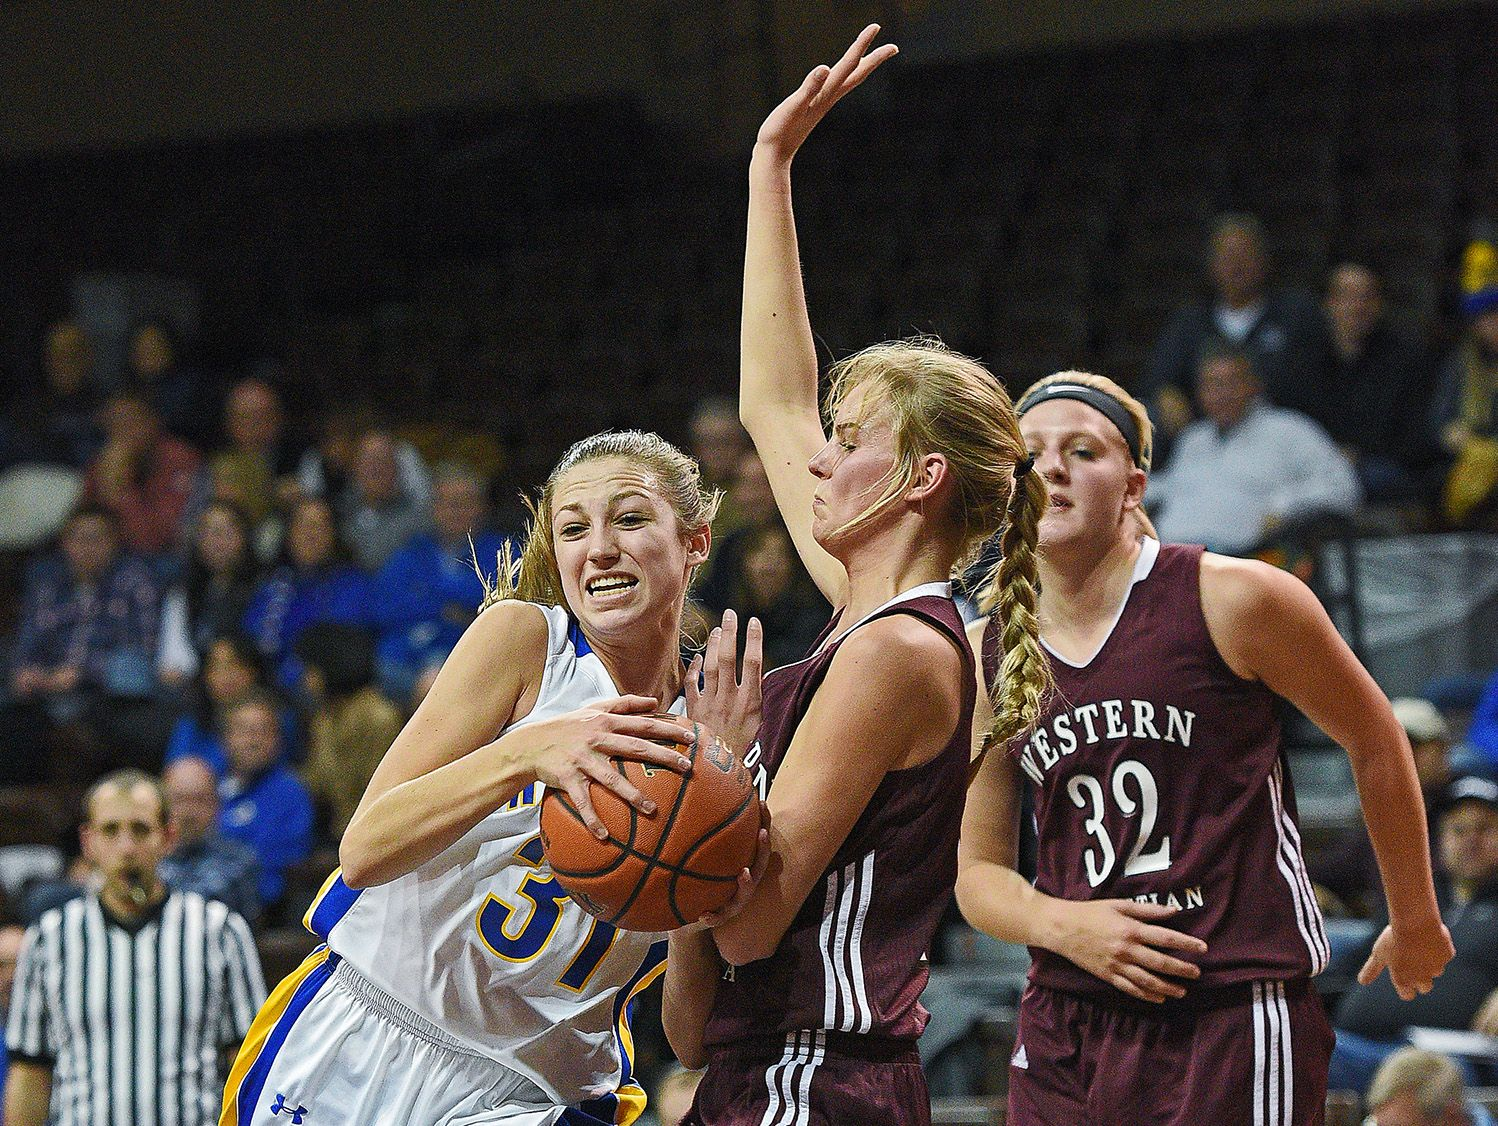 O'Gorman's Emma Ronsiek (31) pushes past Western Christian's Jessi DeJager (10) during the Edith Sanford Breast Center Girls Pentagon Classic Saturday, Dec. 17, 2016, at the Sanford Pentagon in Sioux Falls.